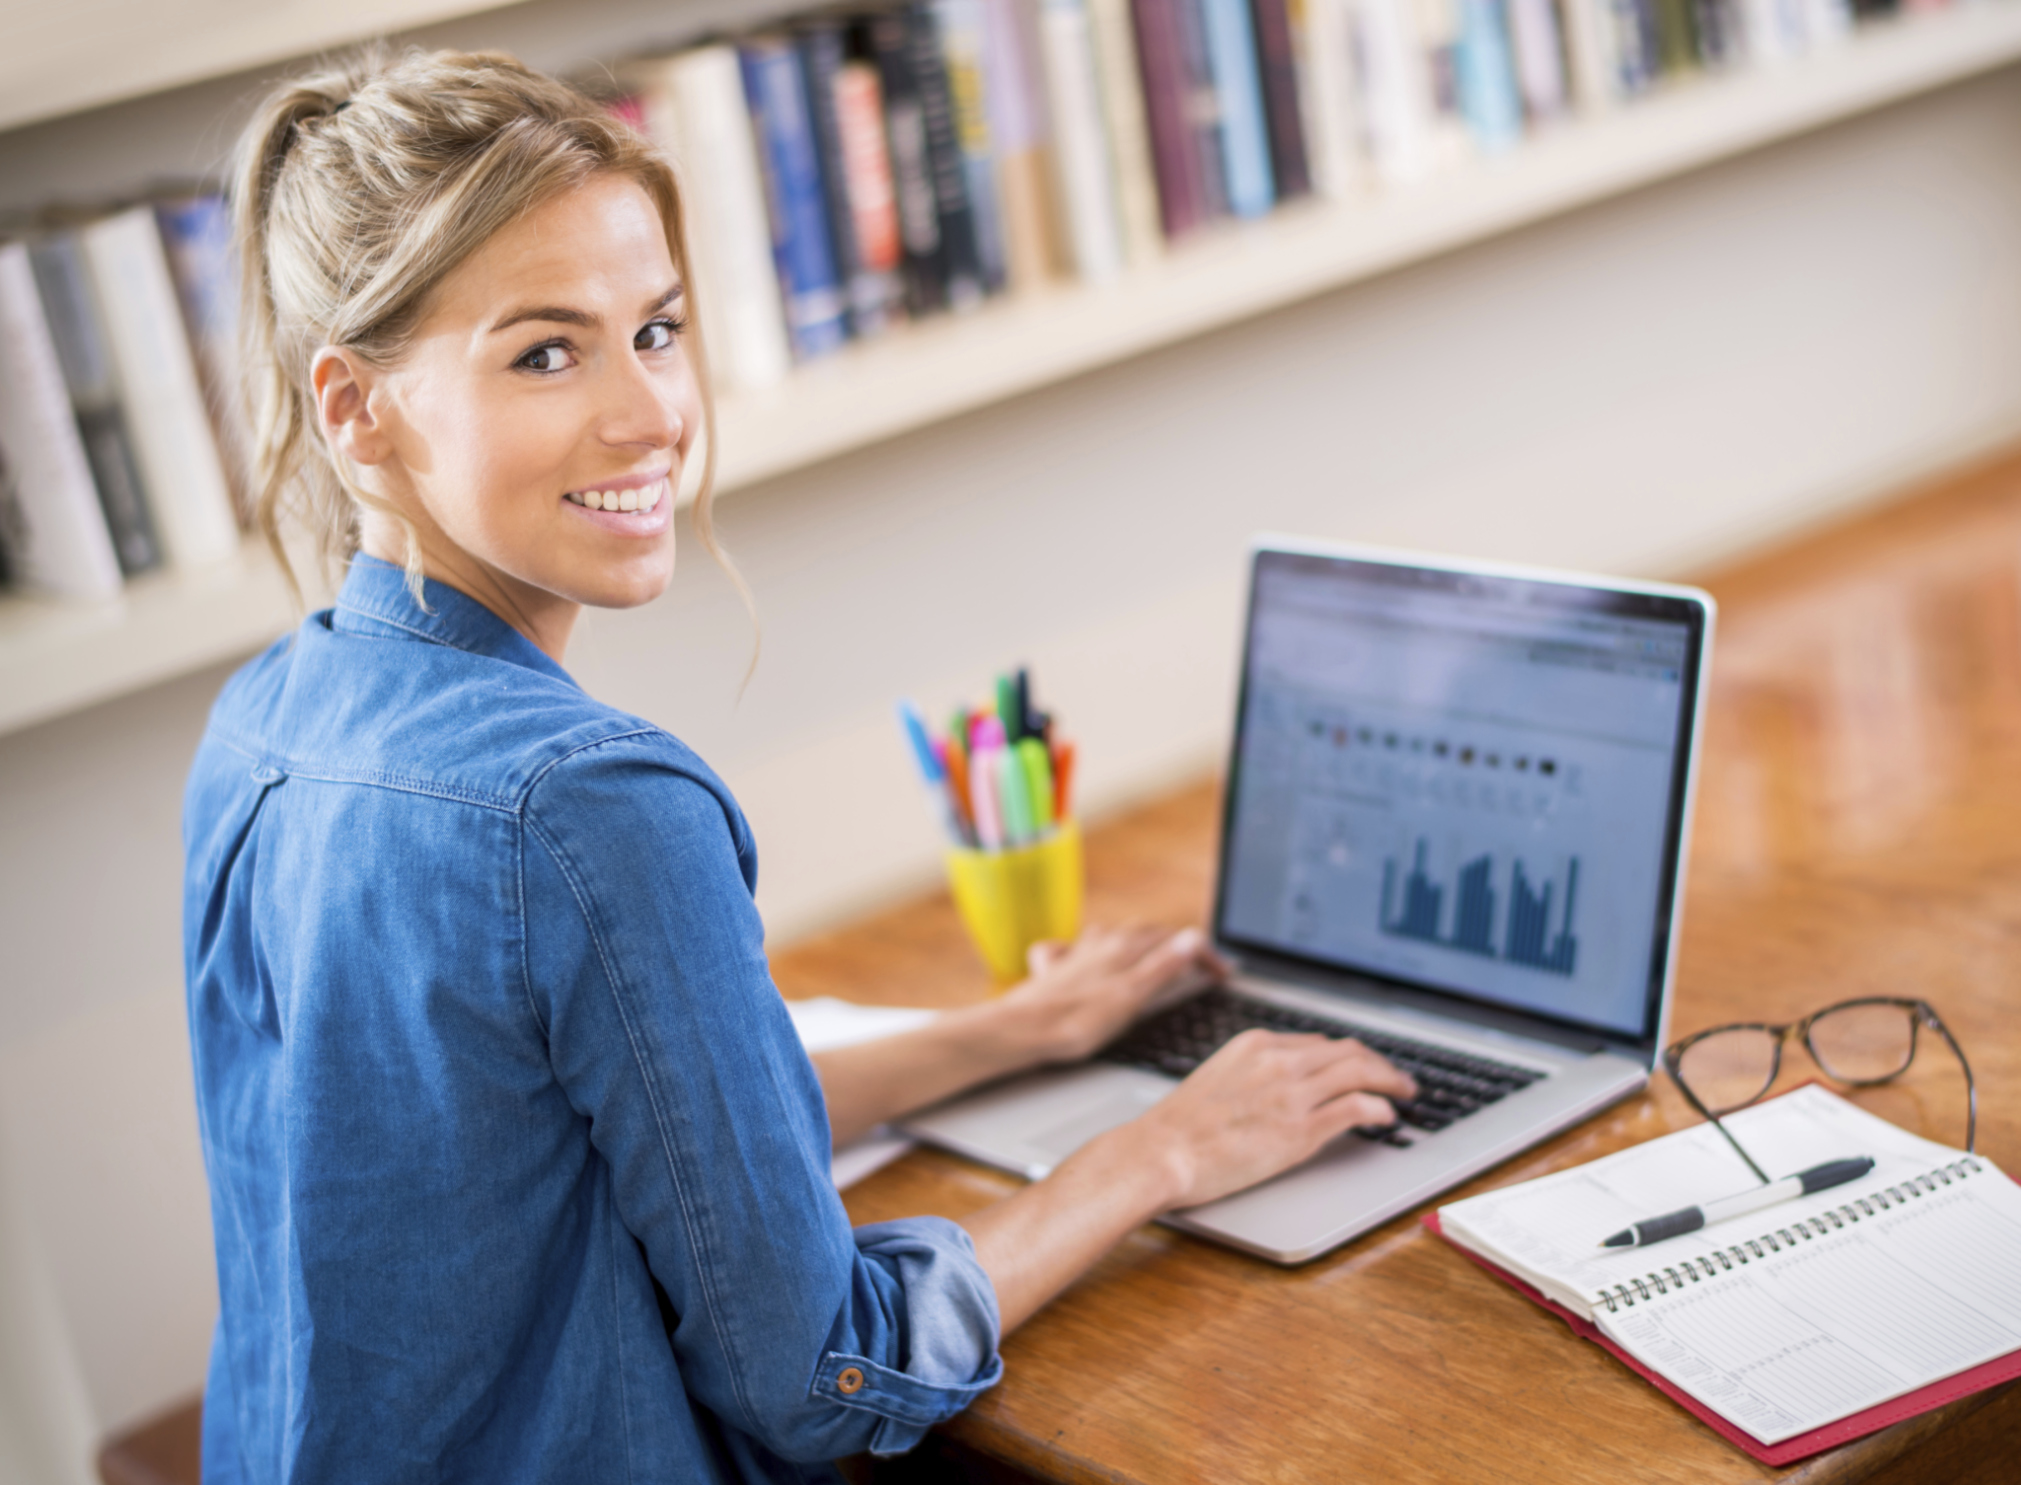 What Is Online Education And How Does It Work?